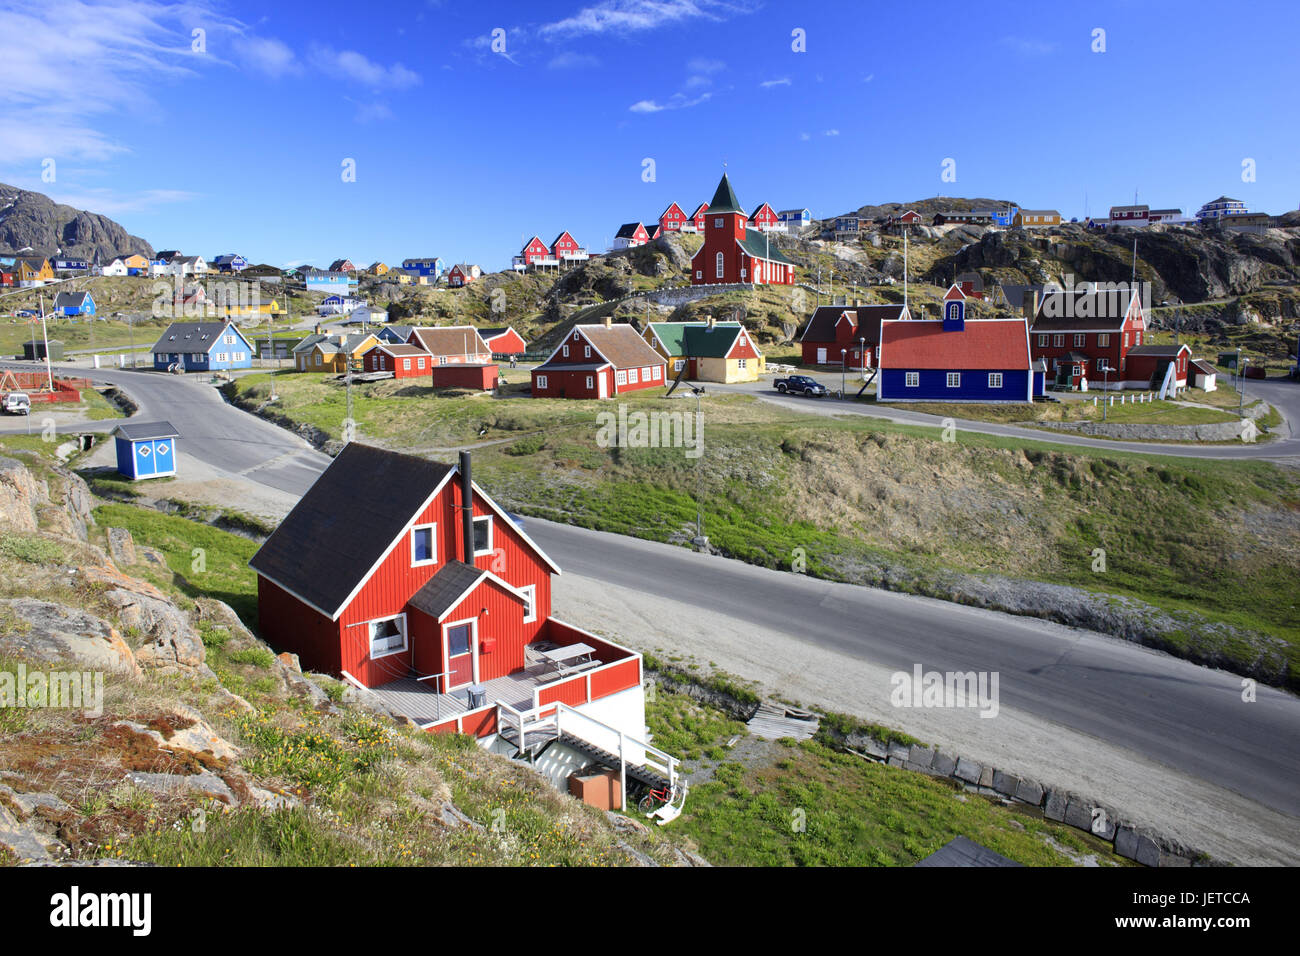 Greenland, Sisimiut, town view, timber houses, church, Western Greenland, town, destination, building, architecture, - Stock Image